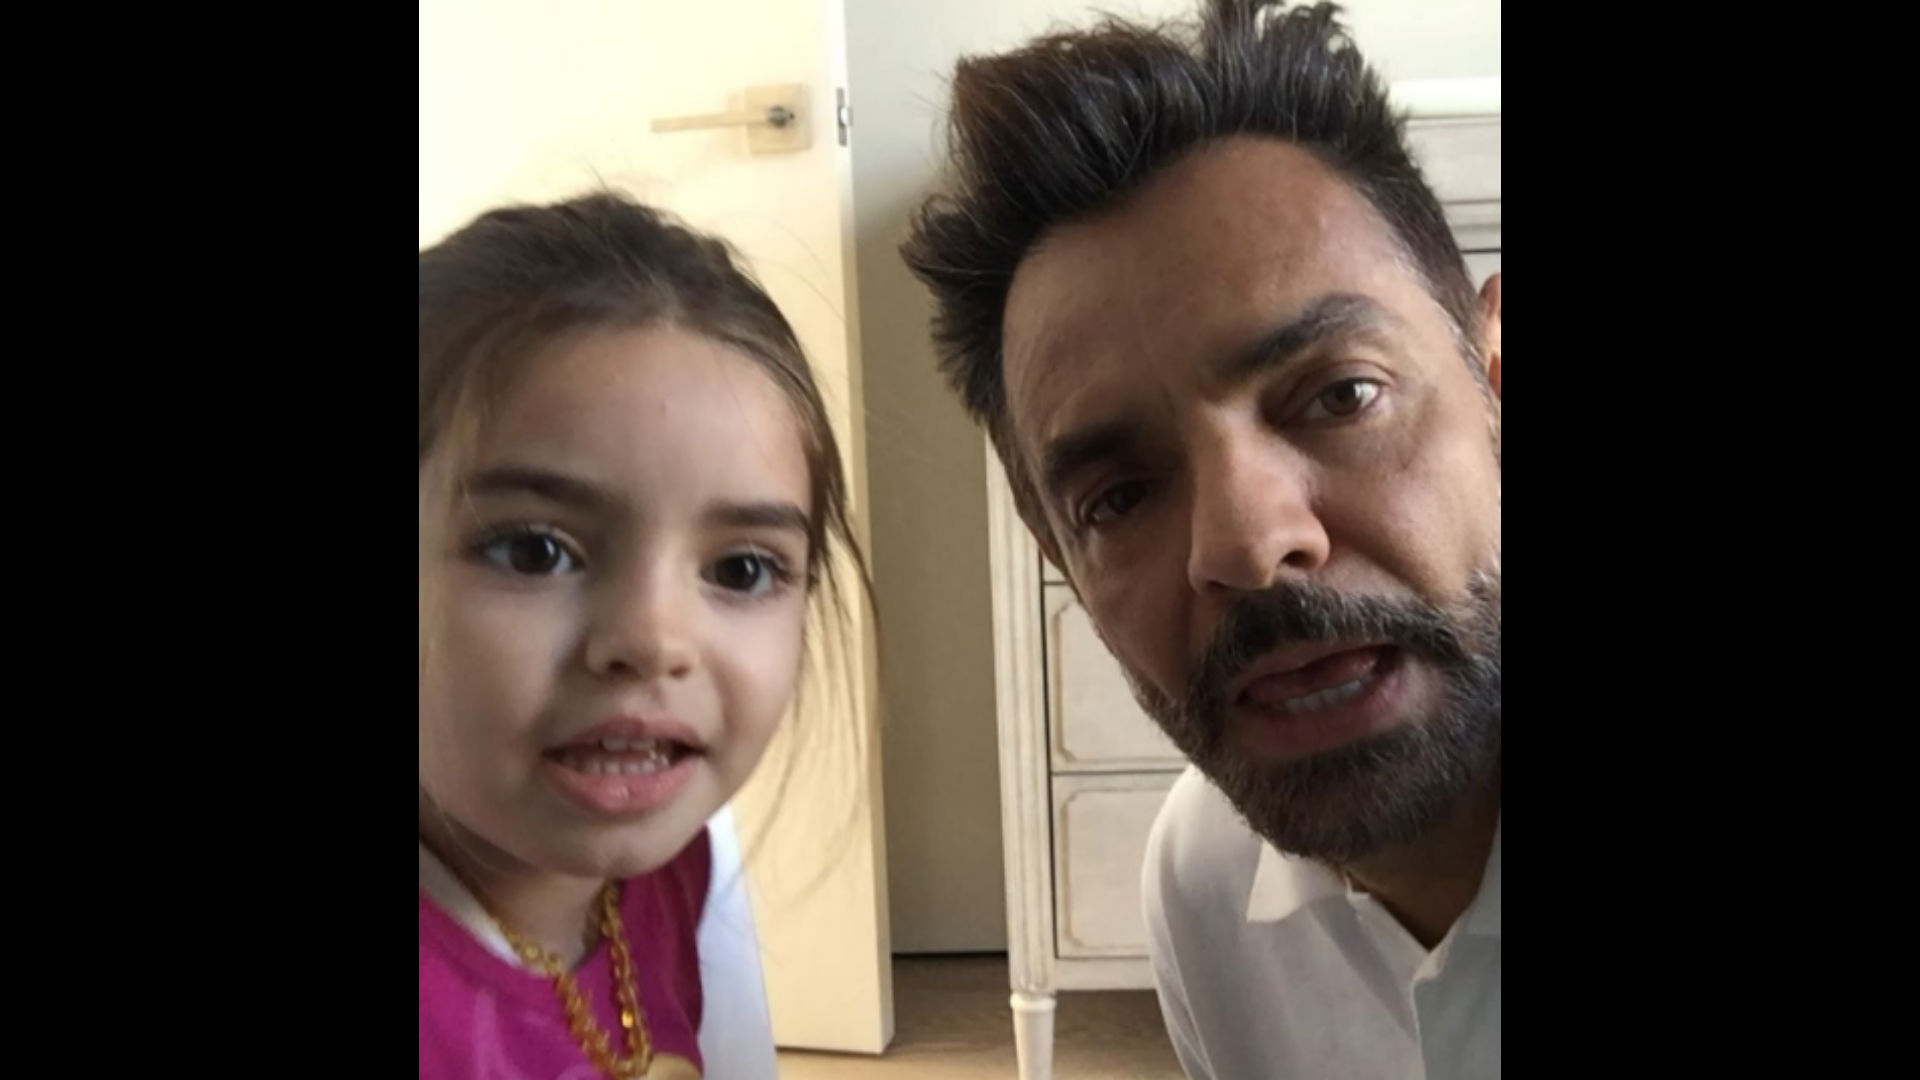 http://www.telemundo.com/sites/nbcutelemundo/files/images/mpx/2018/01/02/180102_3644030_Mira_a_Eugenio_Derbez_y_a_su_hija_Aitana_can.jpg